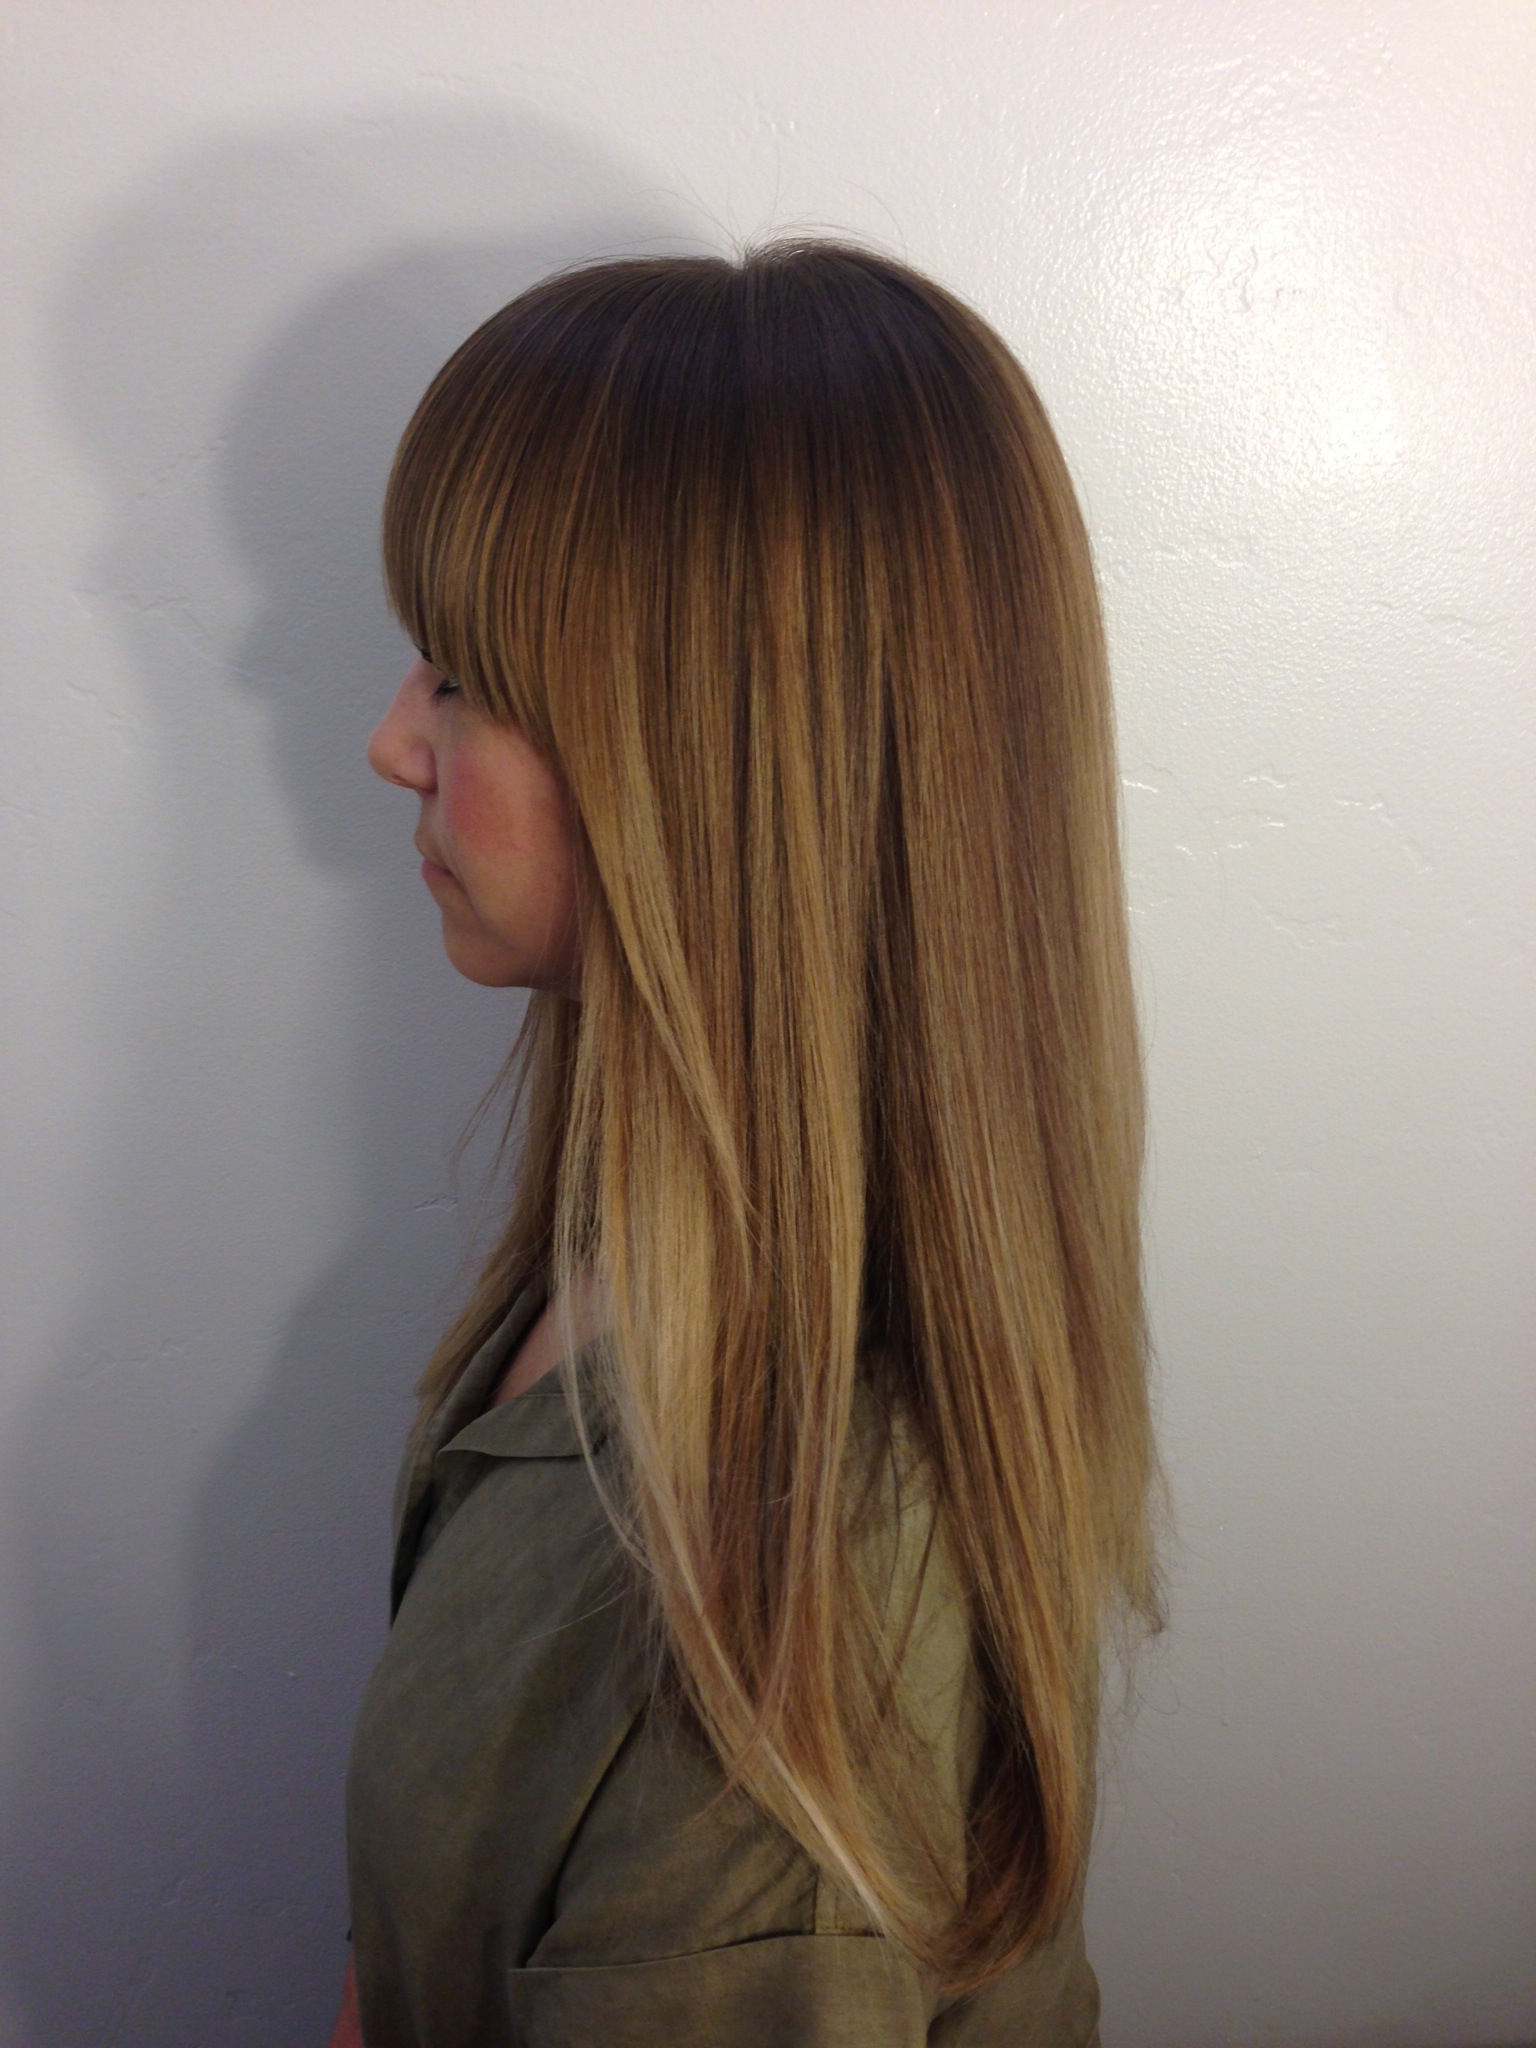 Hair Salon Highlights : ... salon, best color, best highlights, kids highlights, drelefevre.com